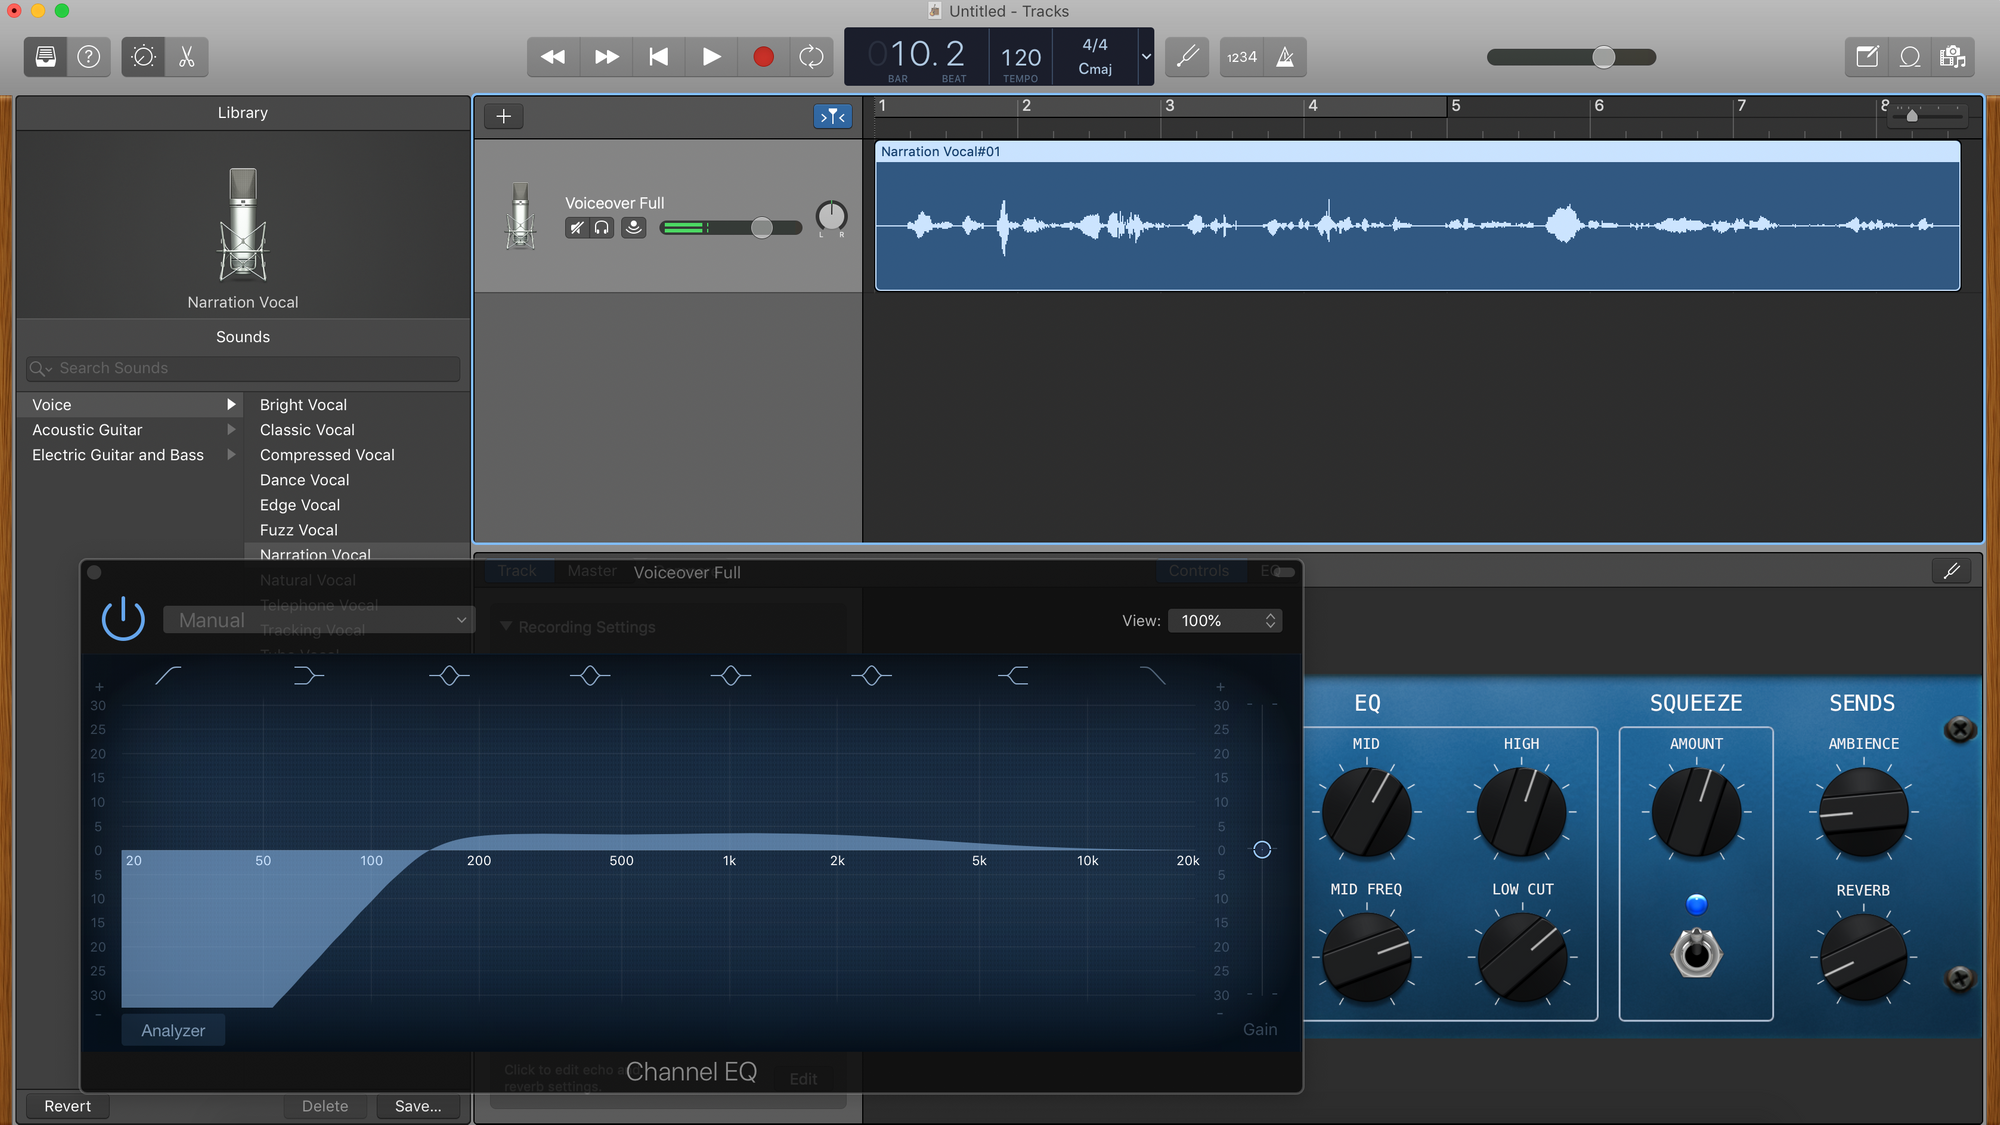 A screenshot of a narration track in GarageBand.